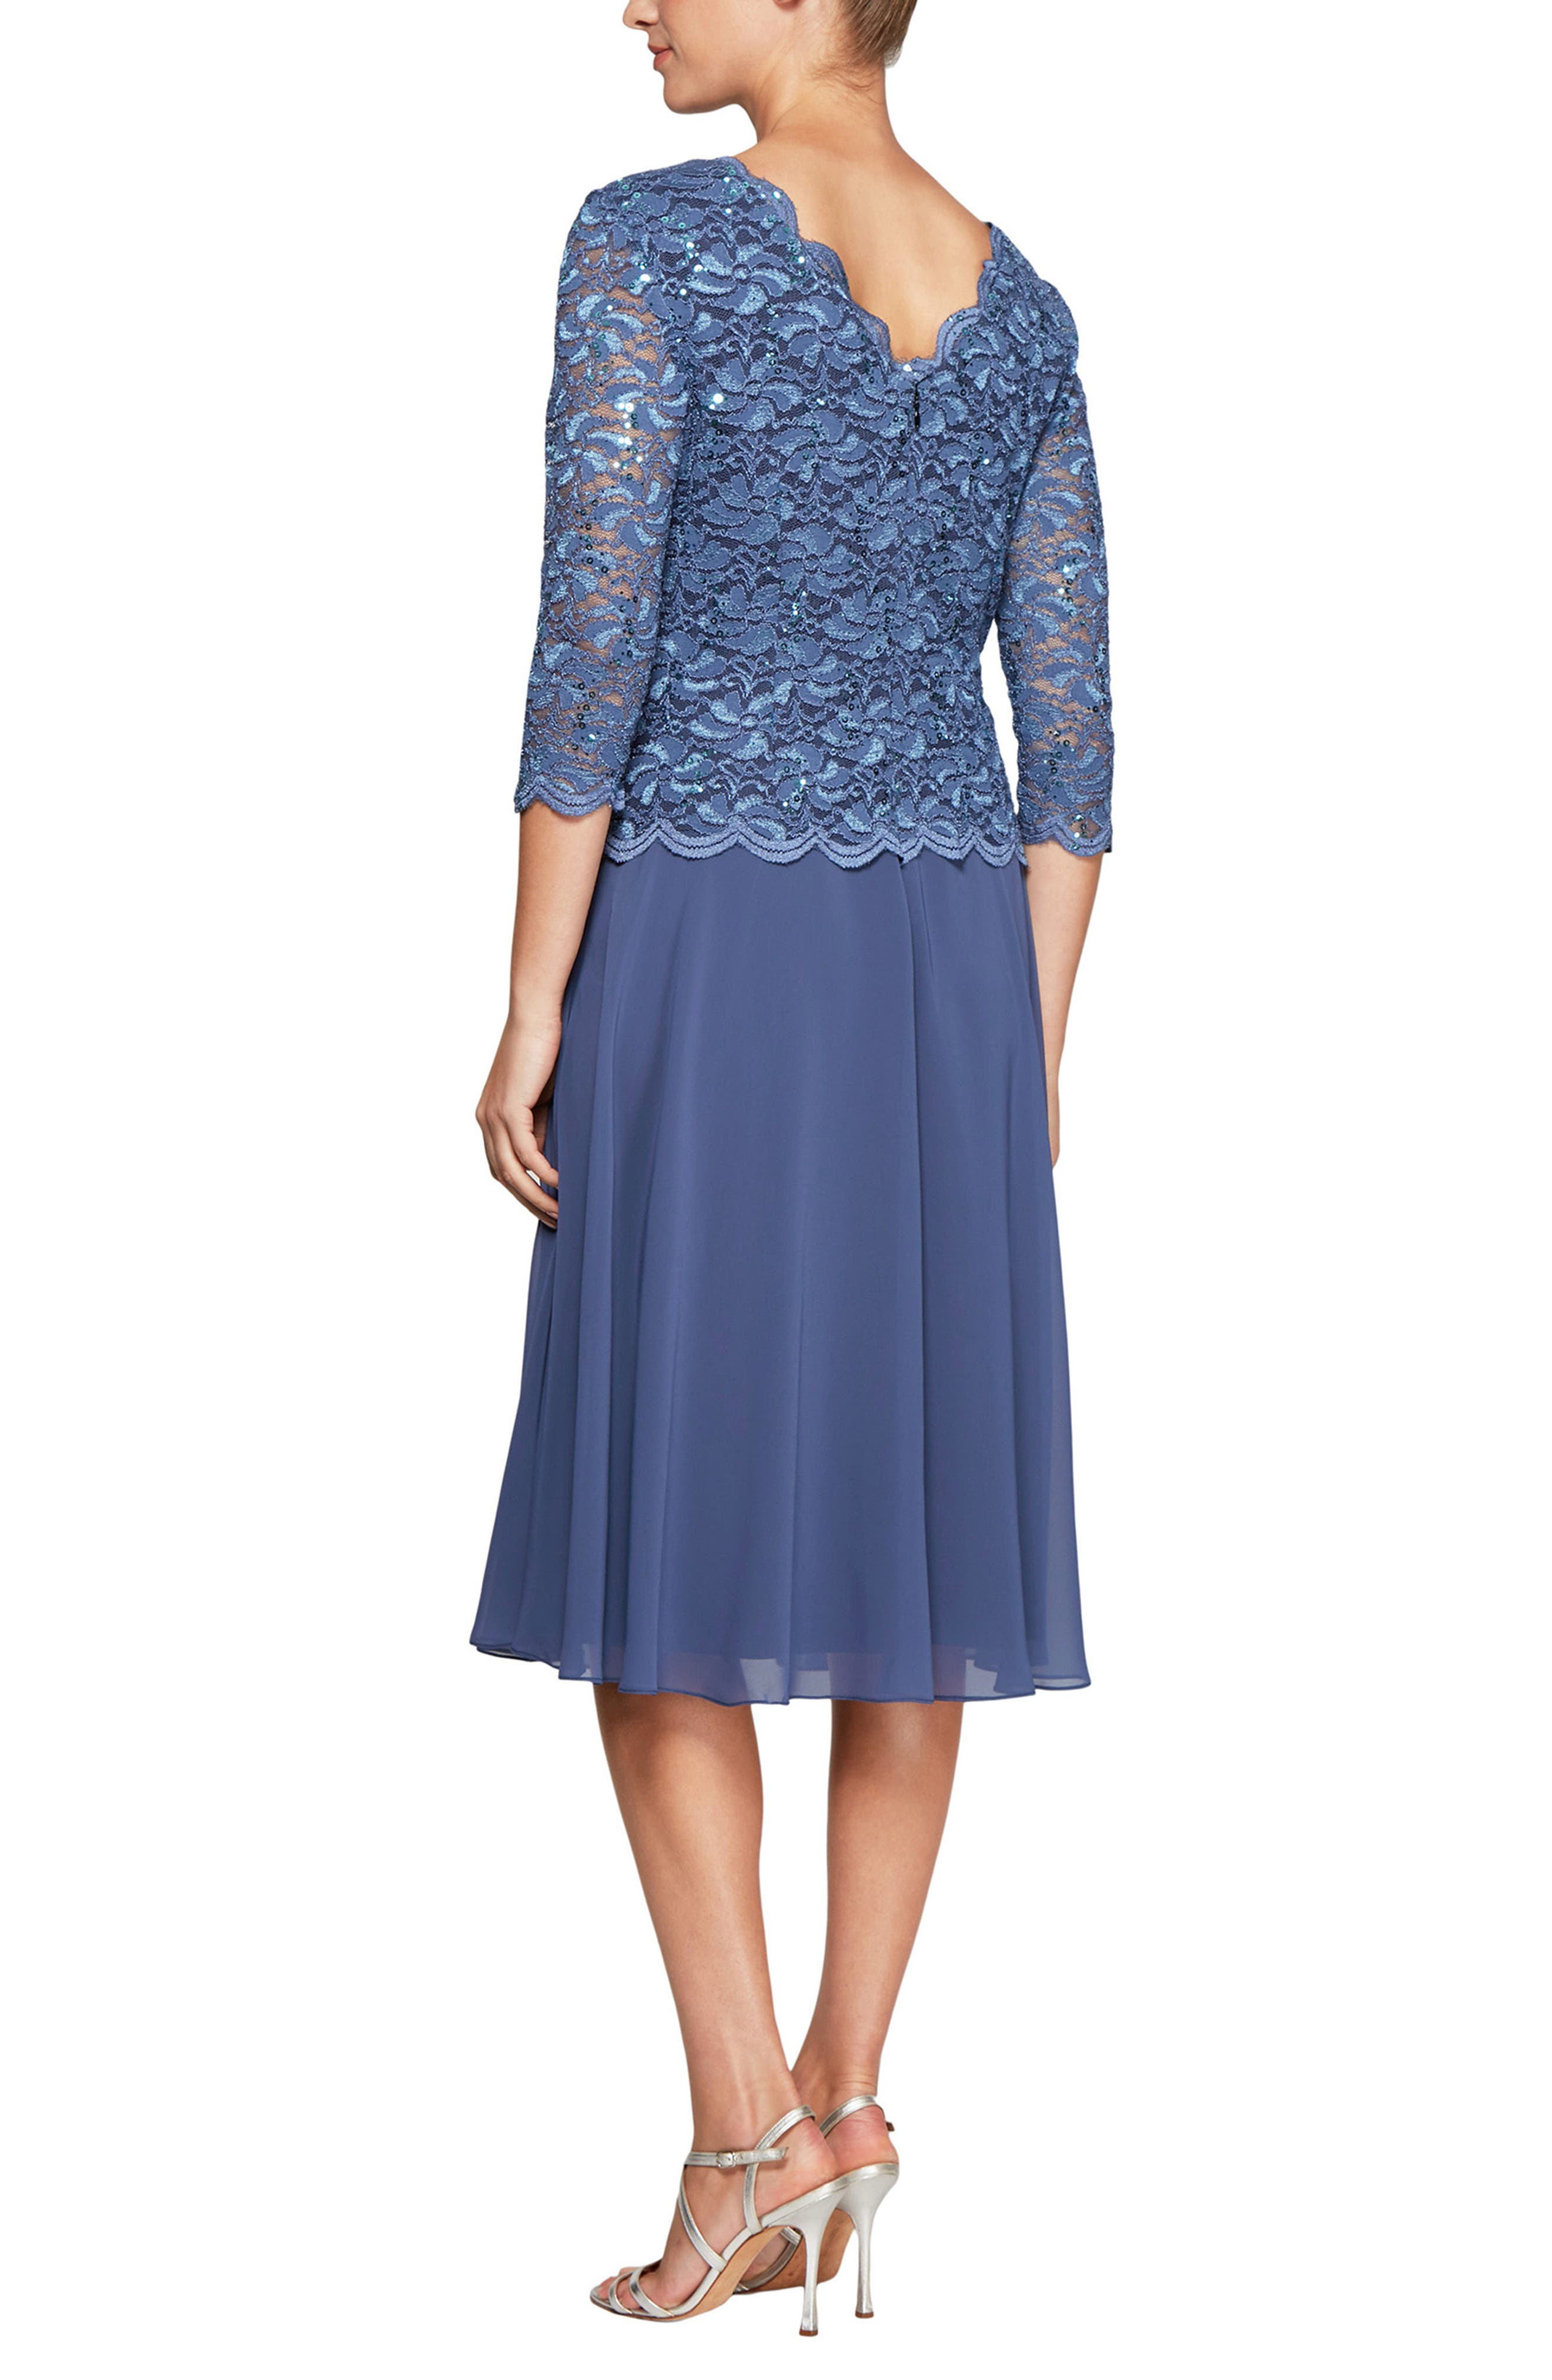 ALEX EVENINGS, Mock Two-Piece Tea Length Dress, Alternate thumbnail 2, color, WEDGEWOOD